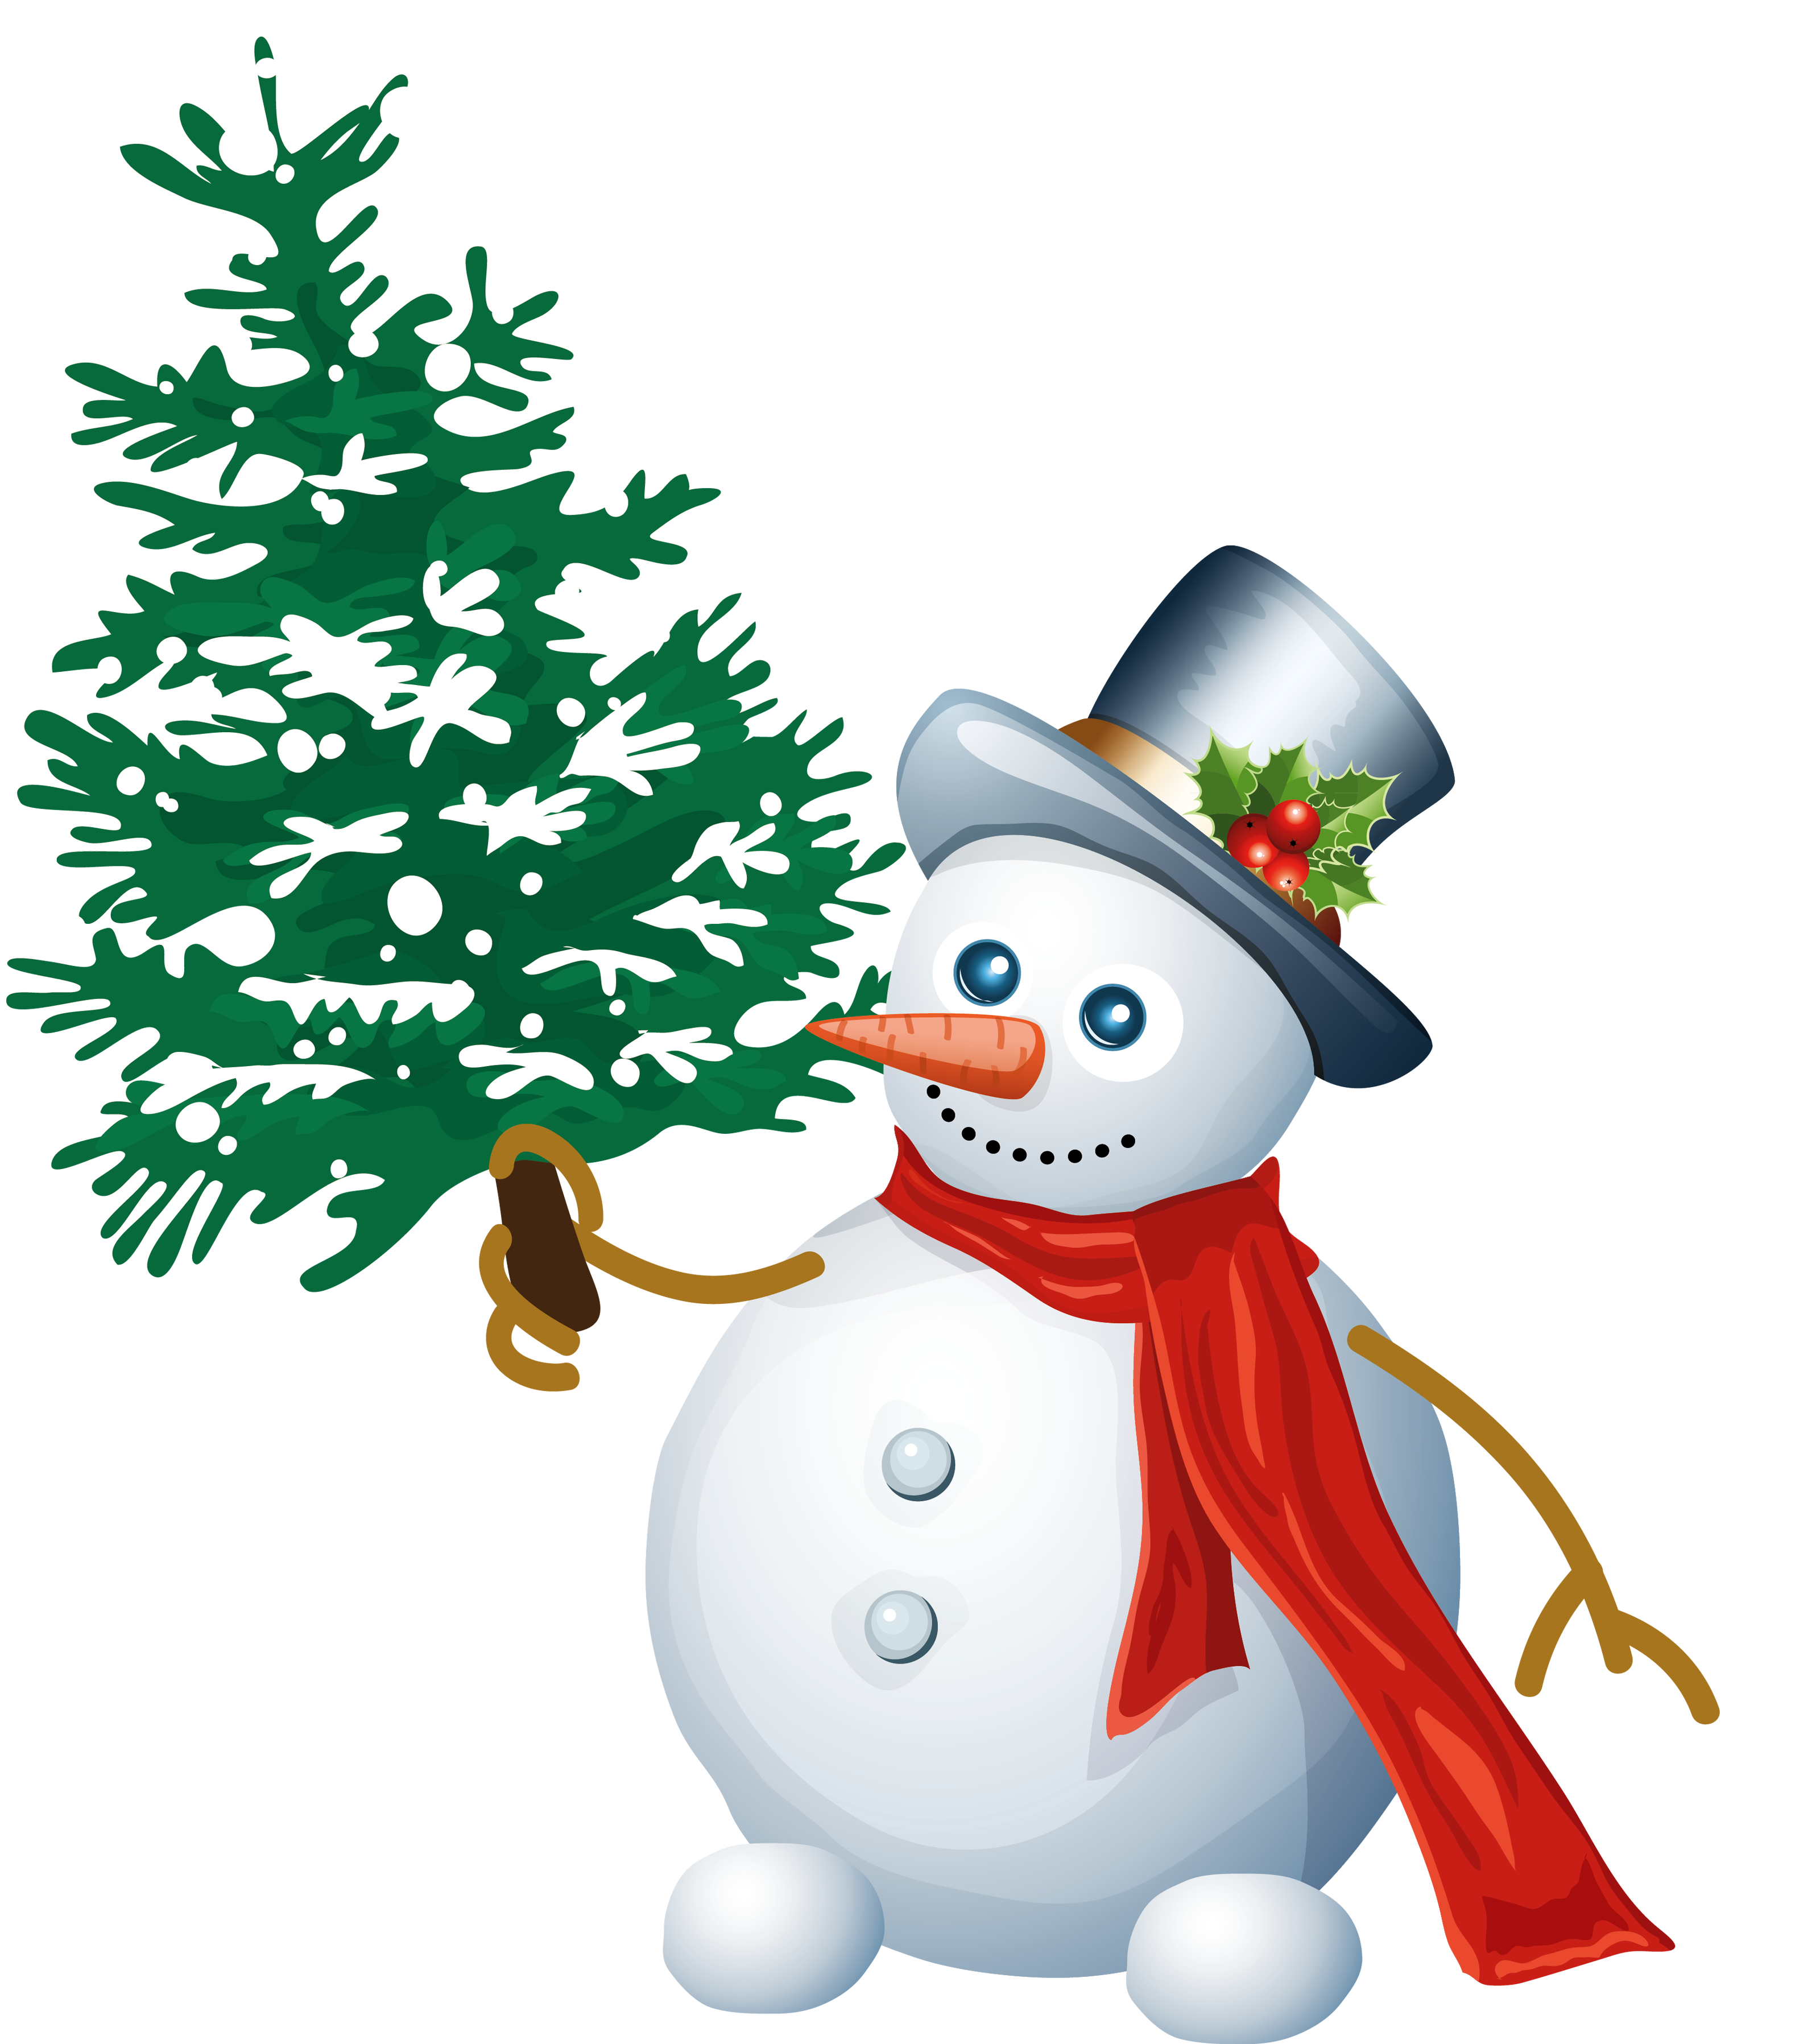 Snowman Claus Tree Santa With Christmas PNG Image